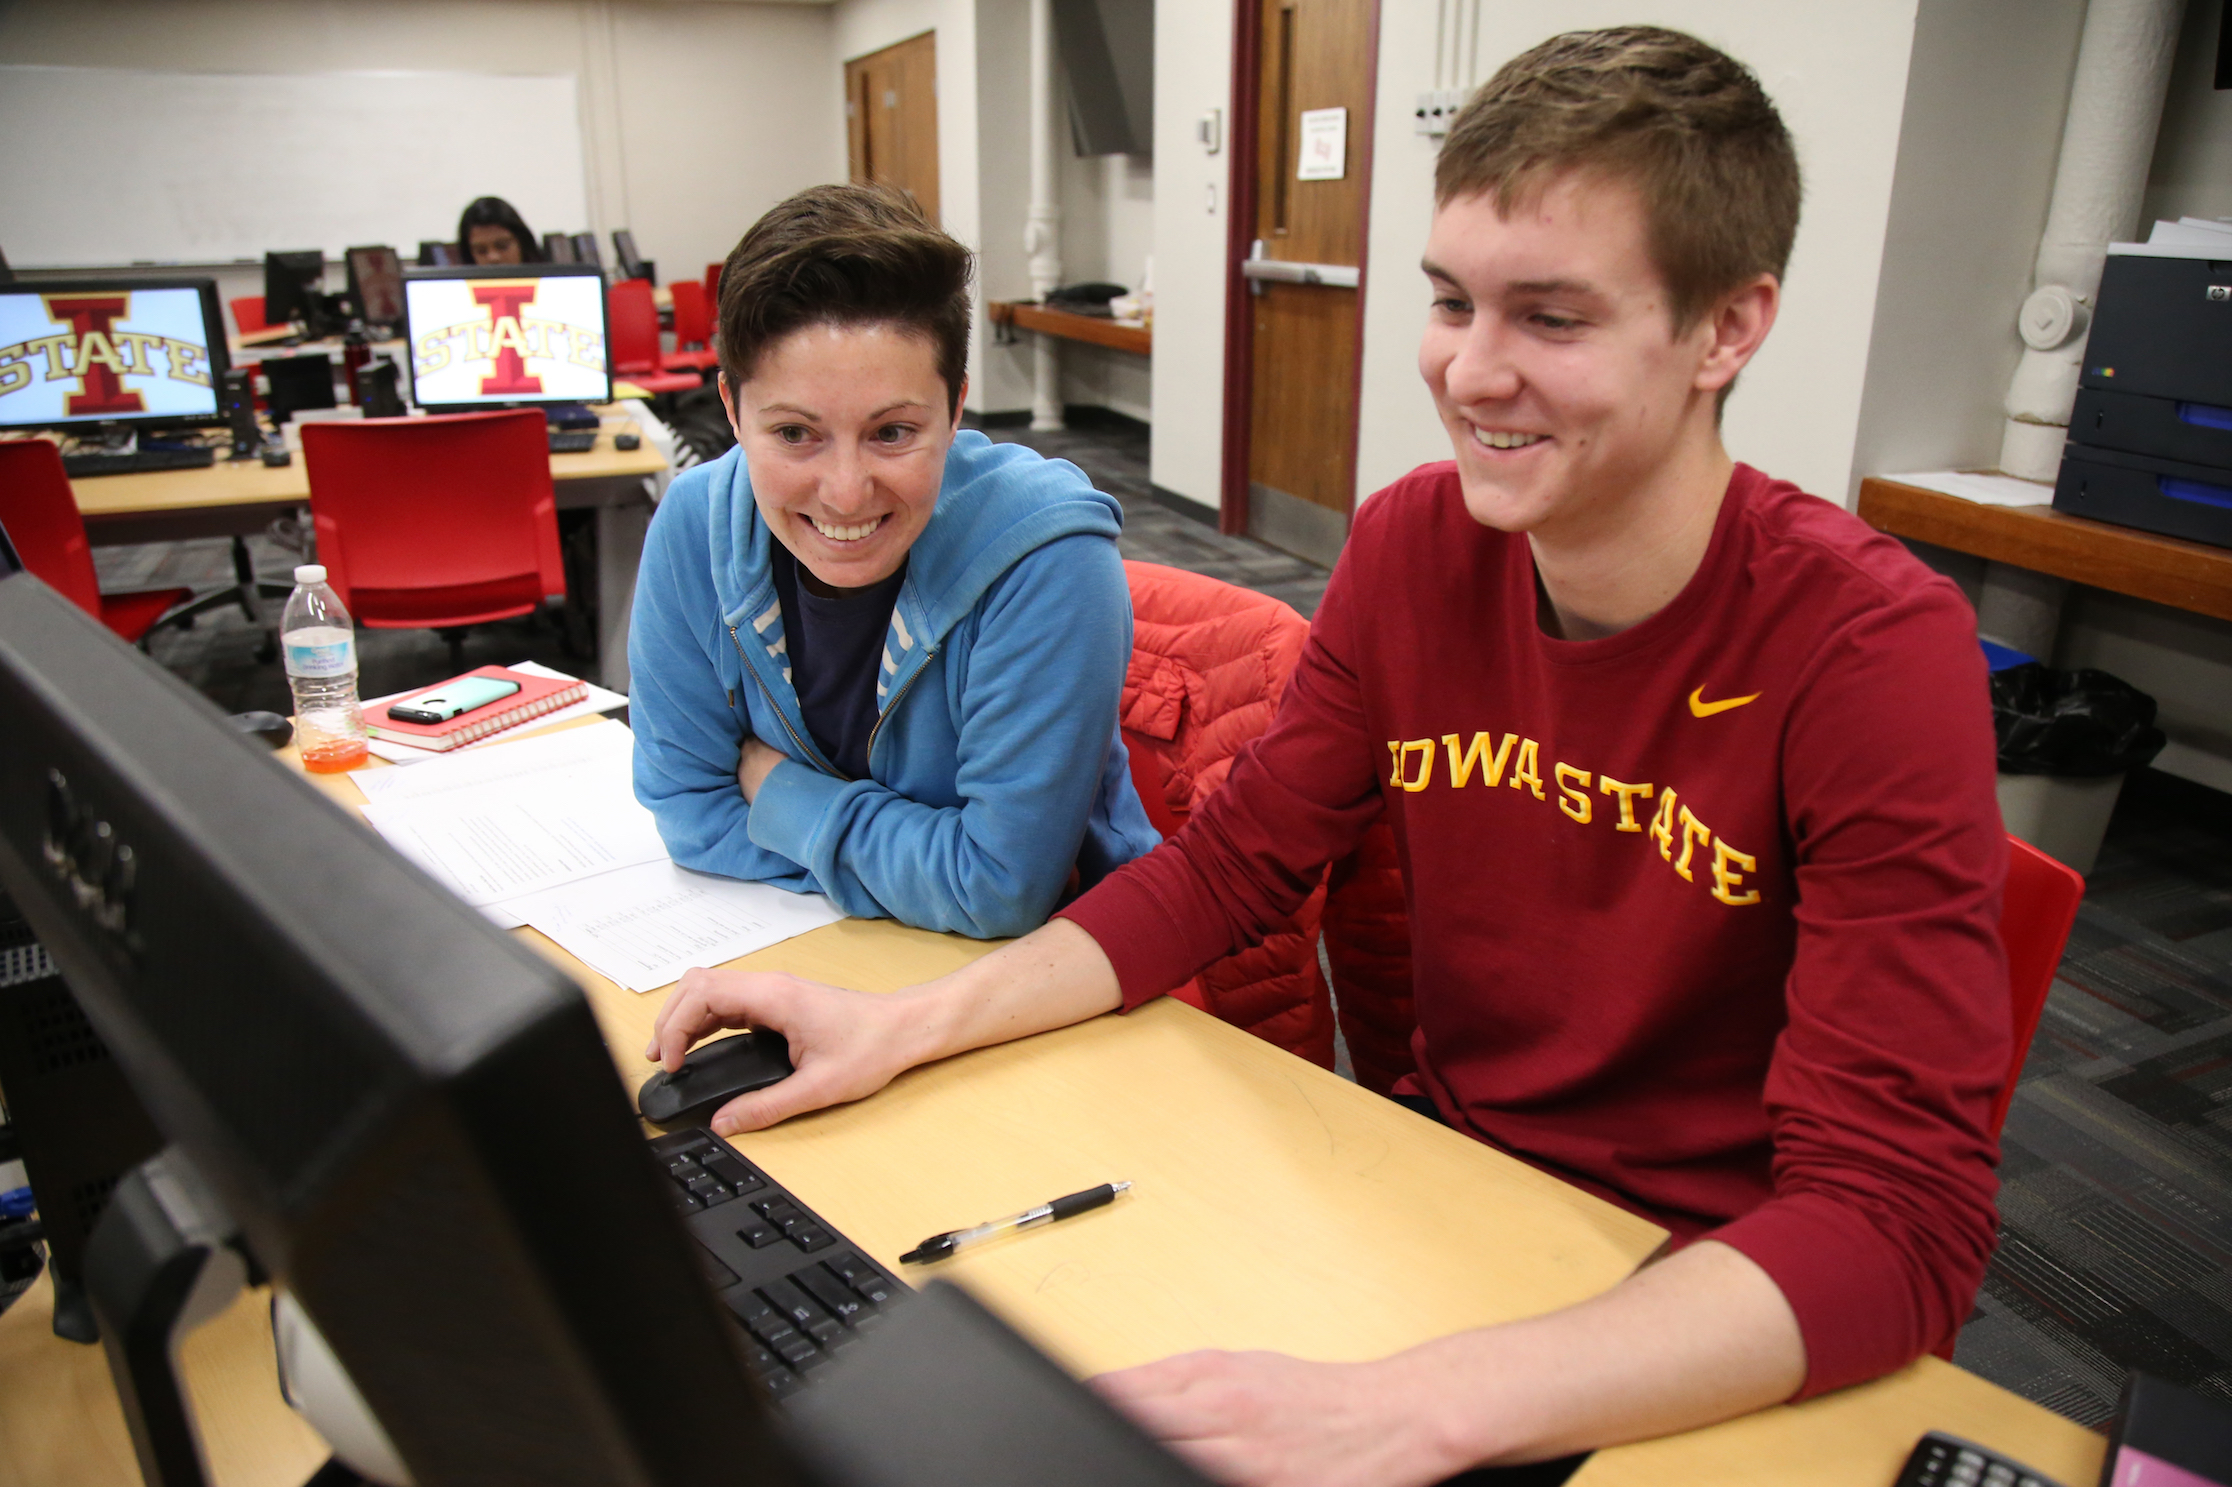 Two students work at a desktop computer together.